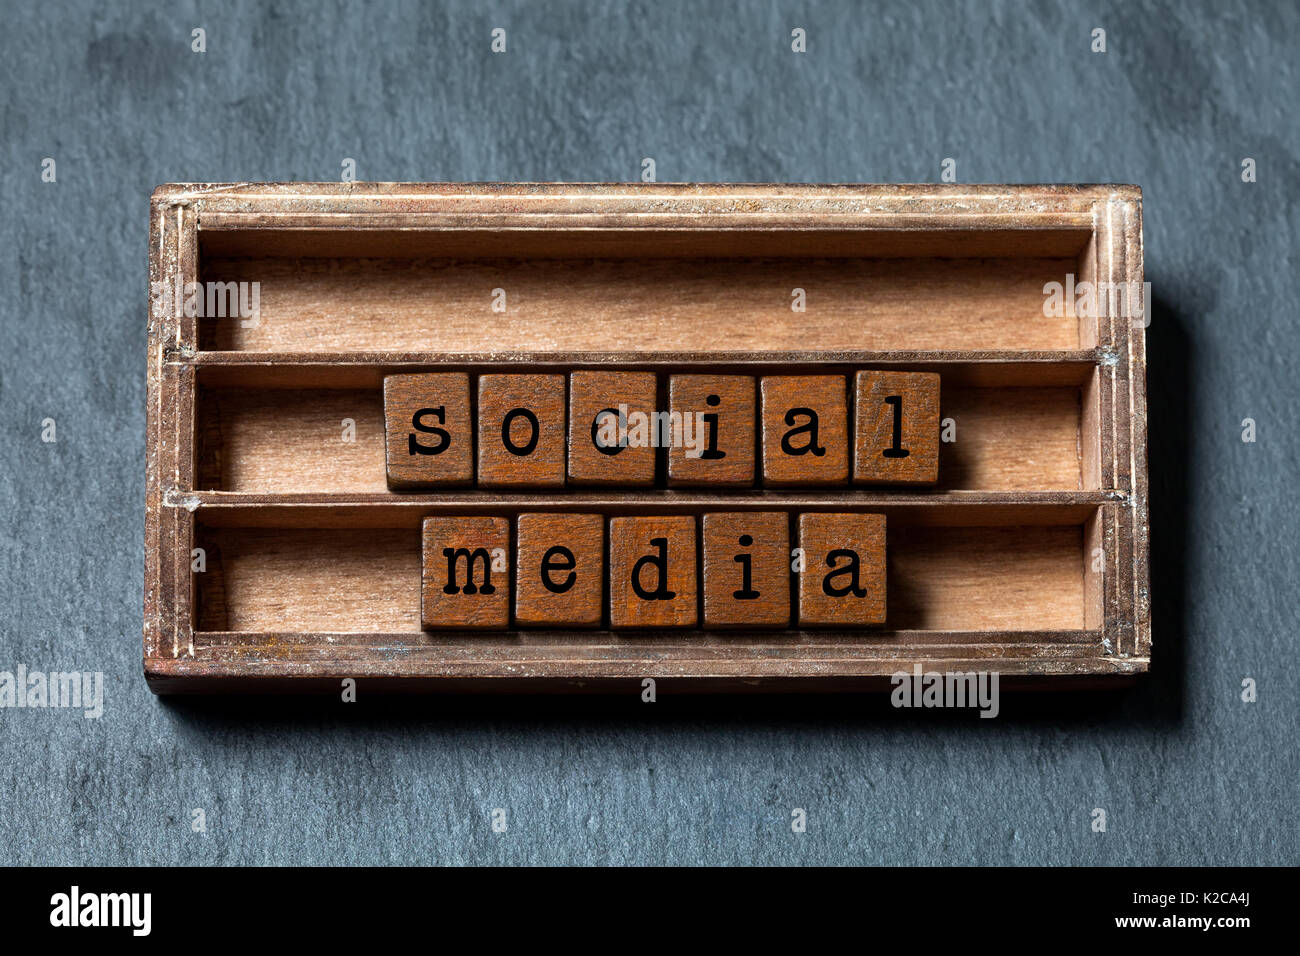 Social media retro style text. Vintage blocks with letters, aged wooden box frame. Gray stone background, macro, soft focus - Stock Image